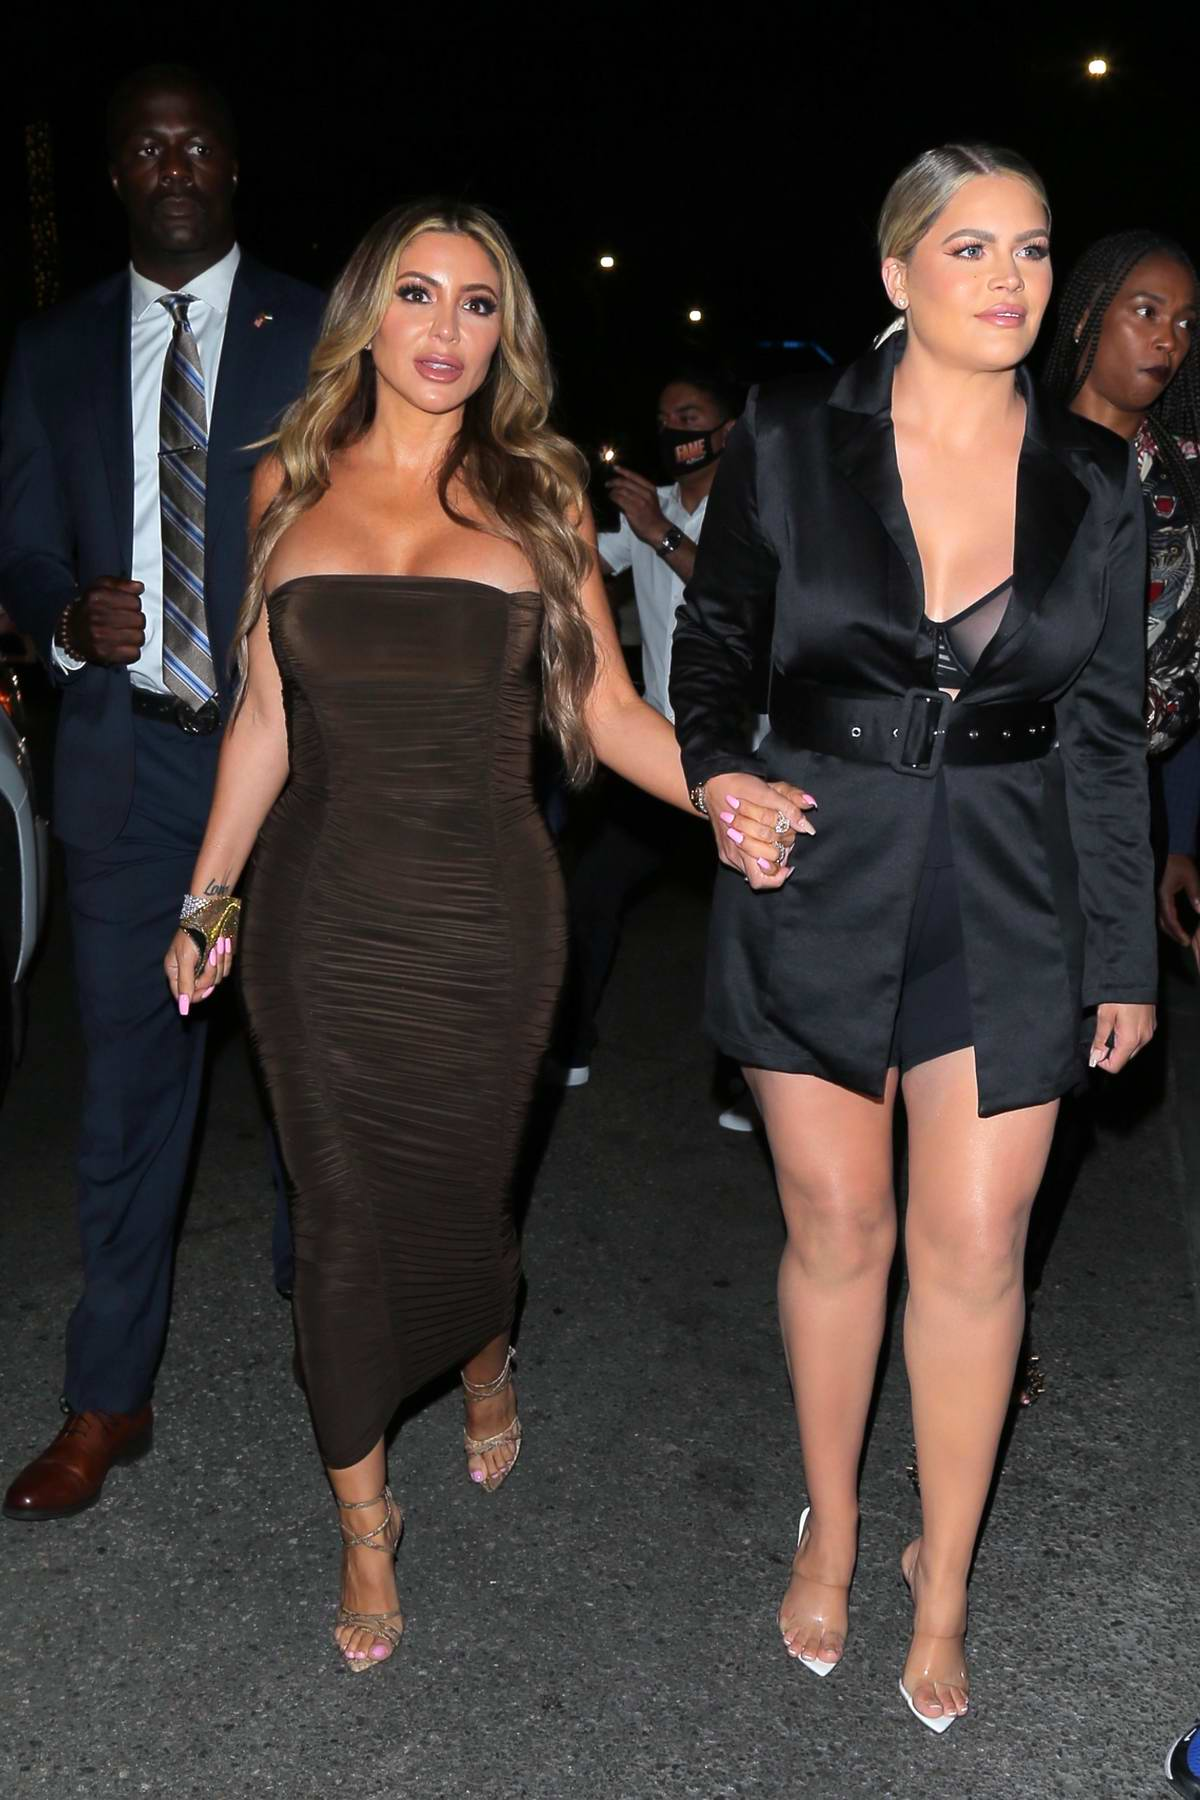 Larsa Pippen stuns in a brown dress while out for dinner with Kelsea Moscatel at Il Pastaio in Beverly Hills, California